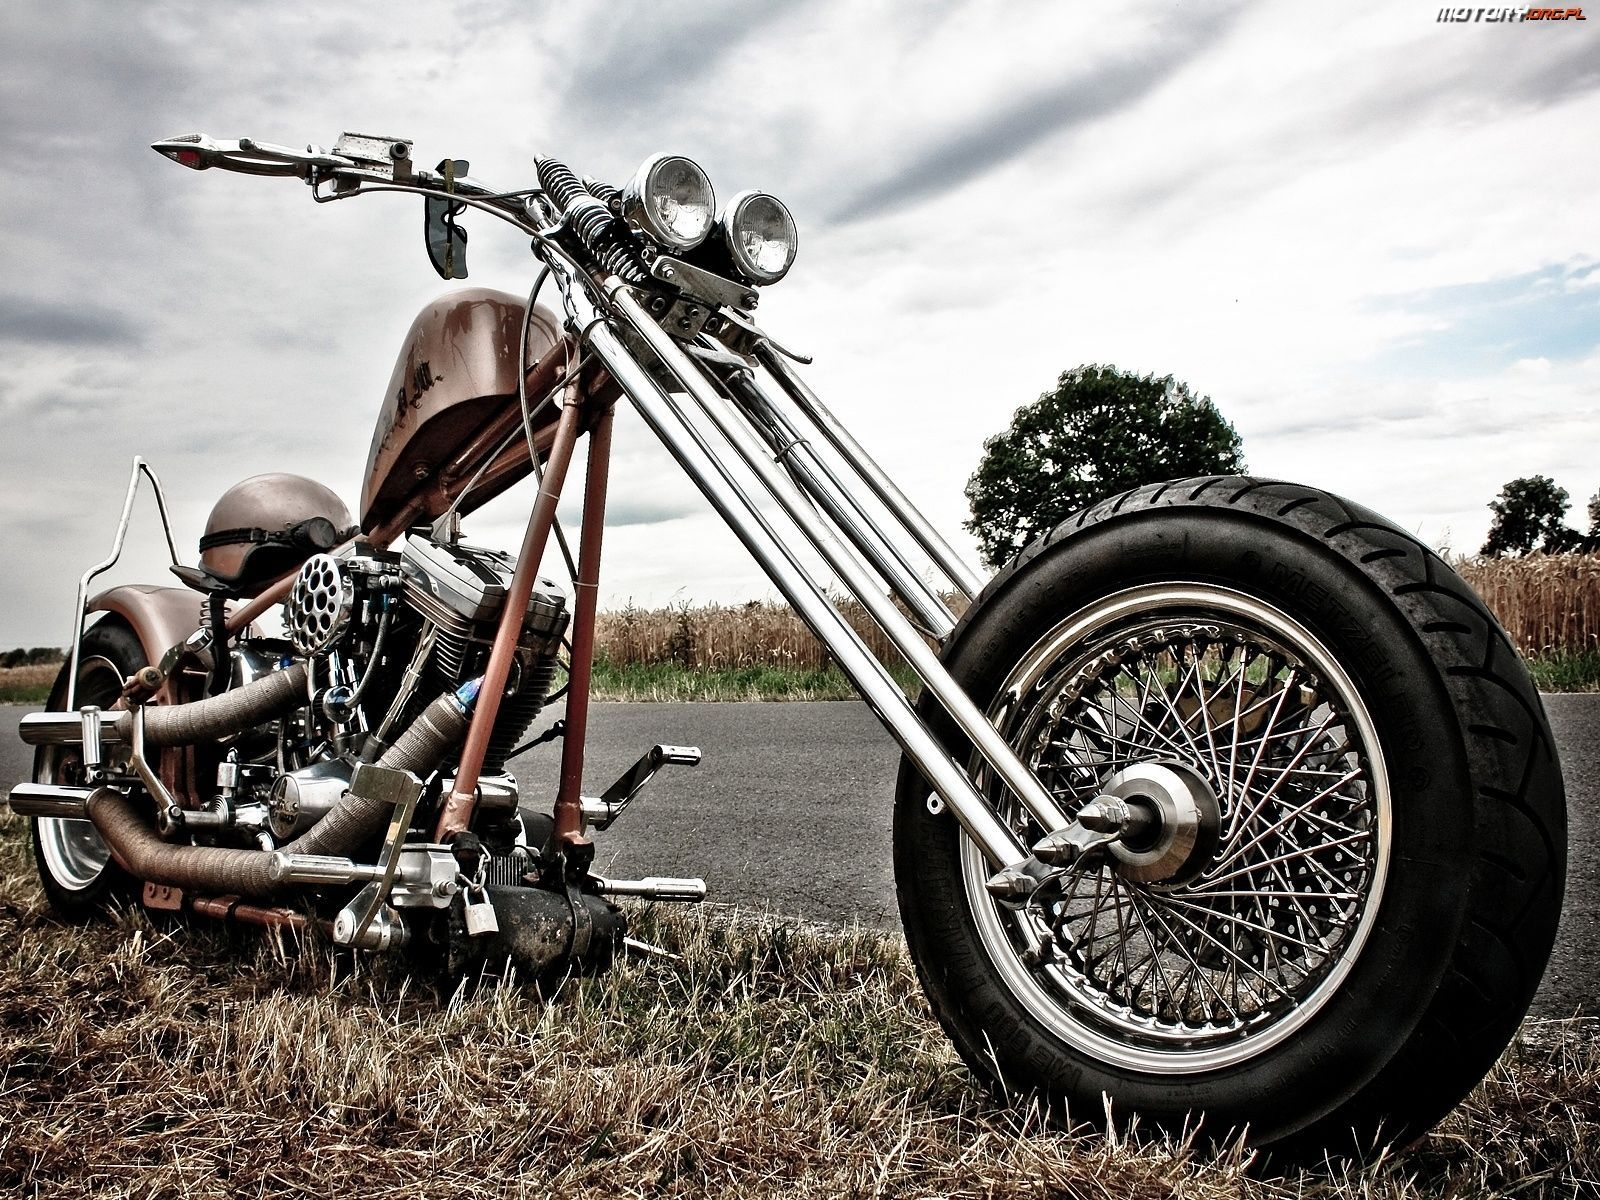 Harley Davidson Chopper Wallpapers Top Free Harley Davidson Chopper Backgrounds Wallpaperaccess